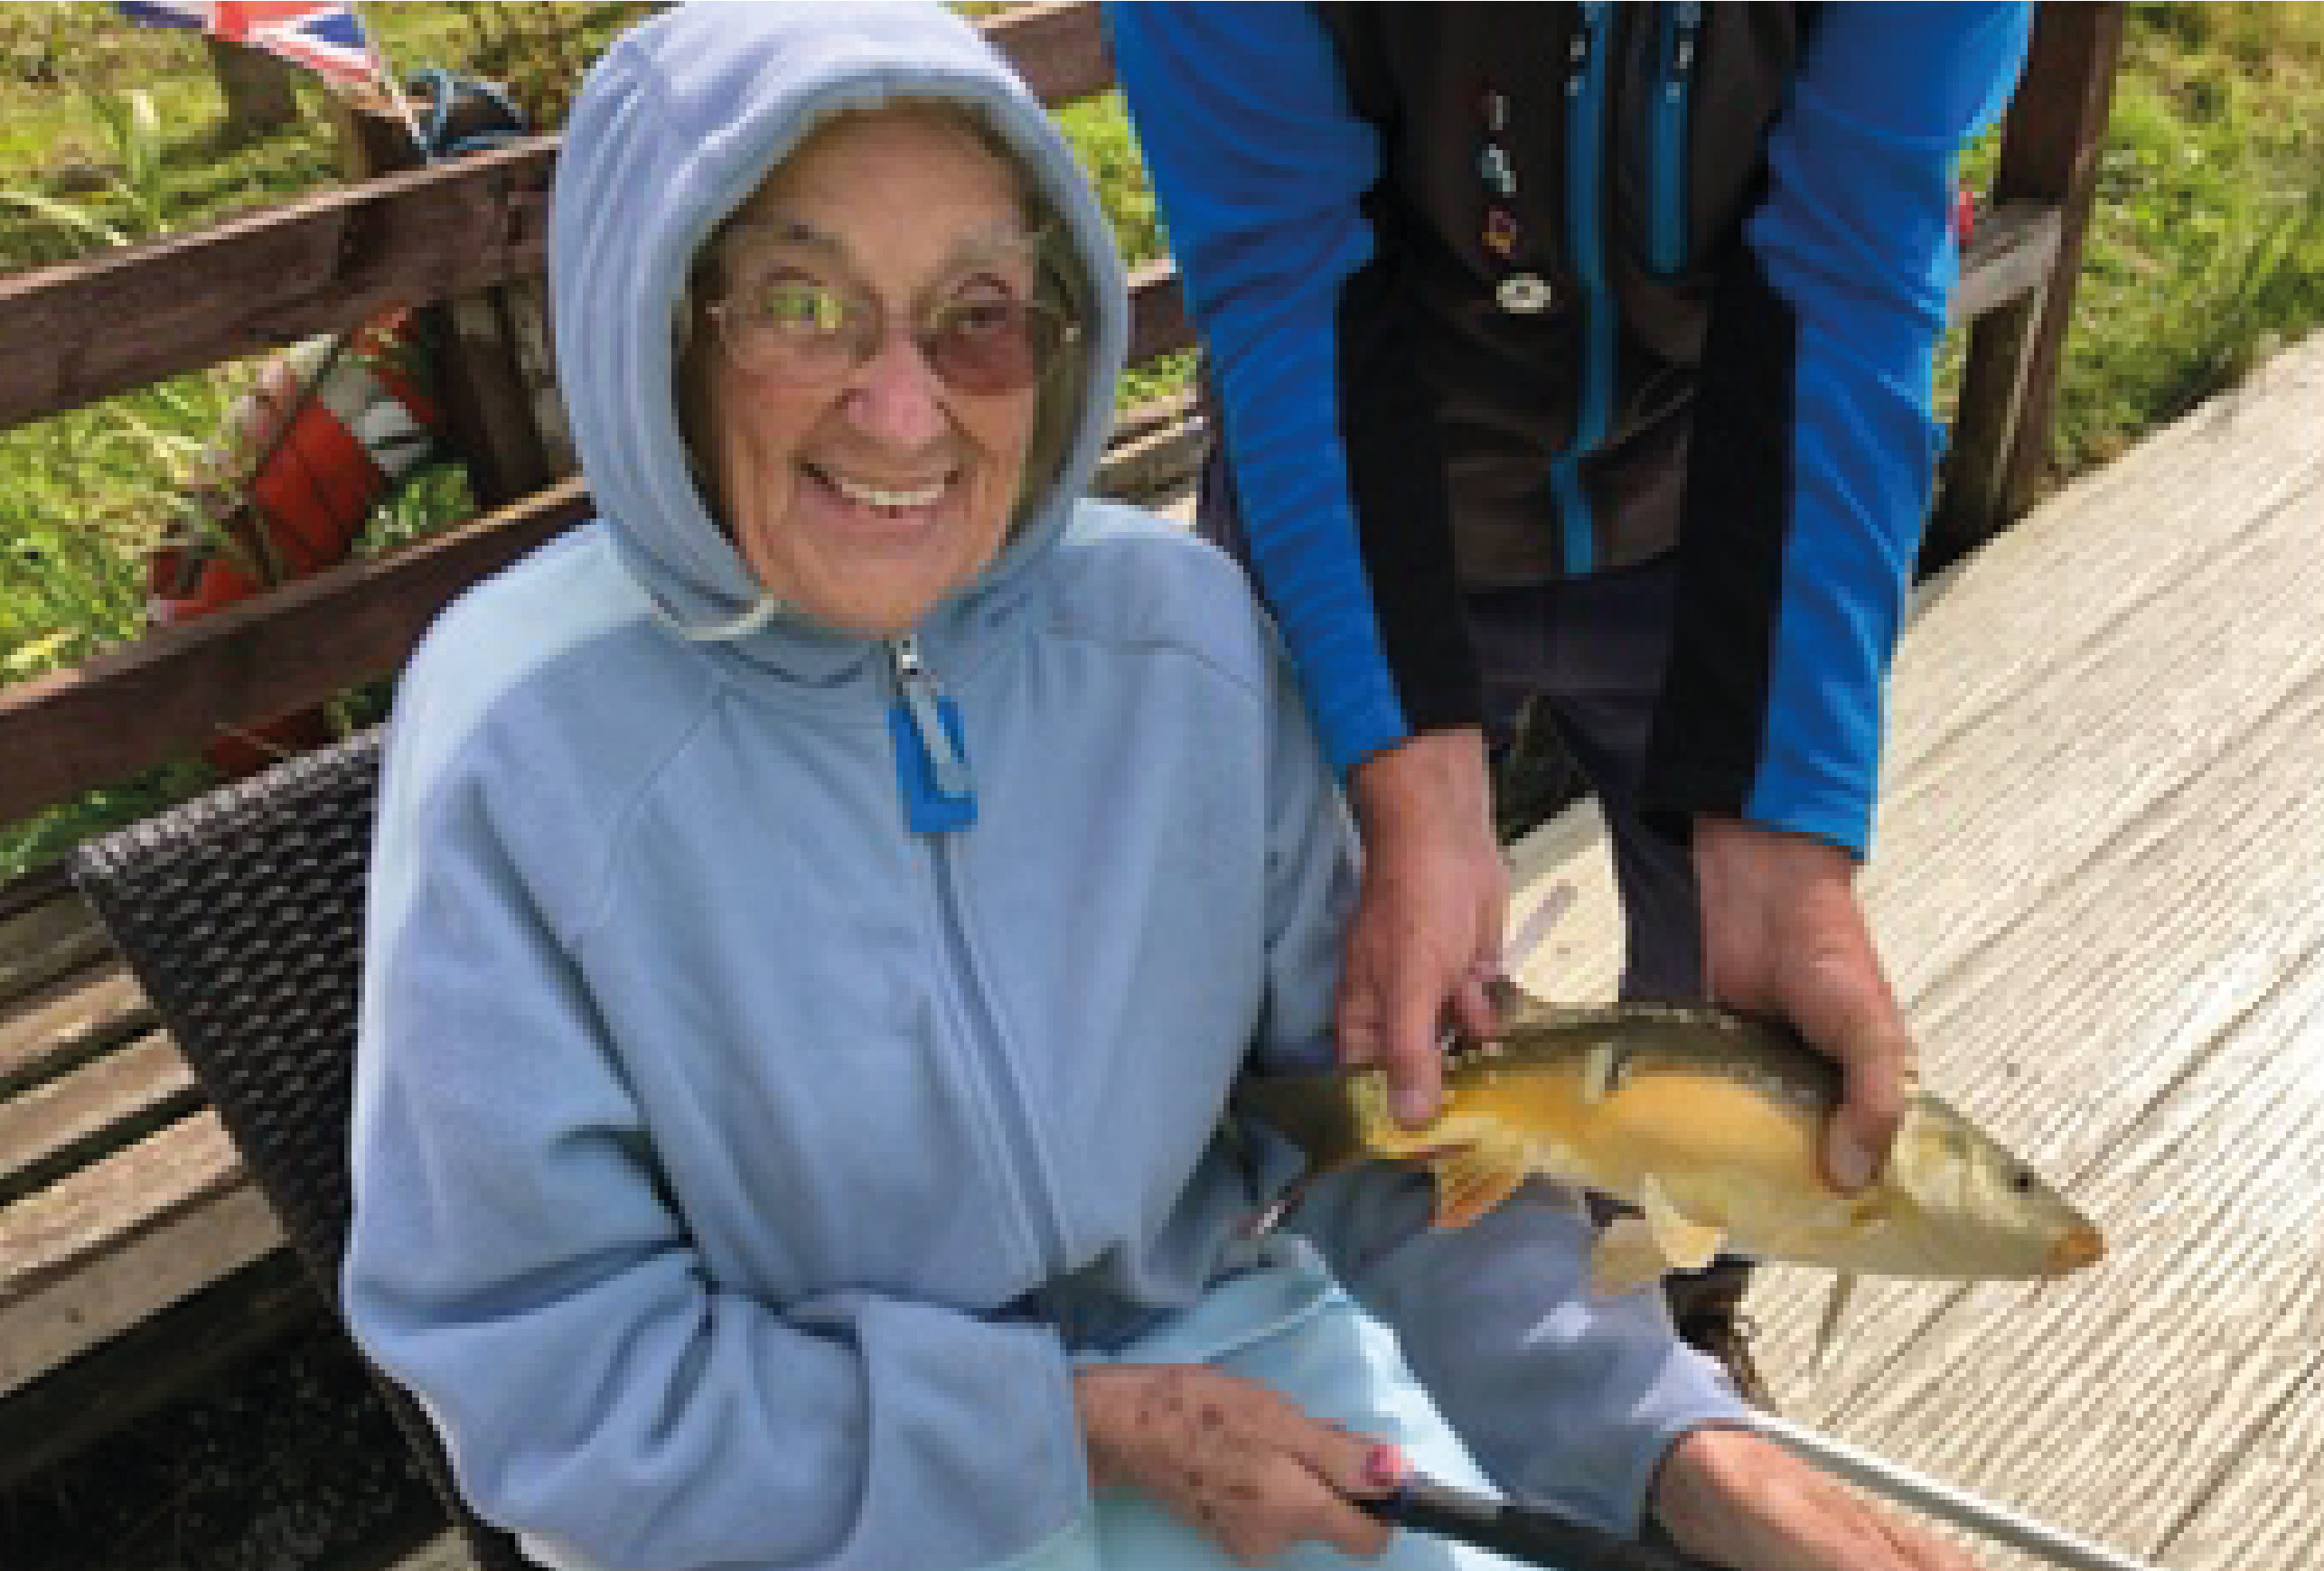 Reeling them in! Care home residents enjoy fishing trip